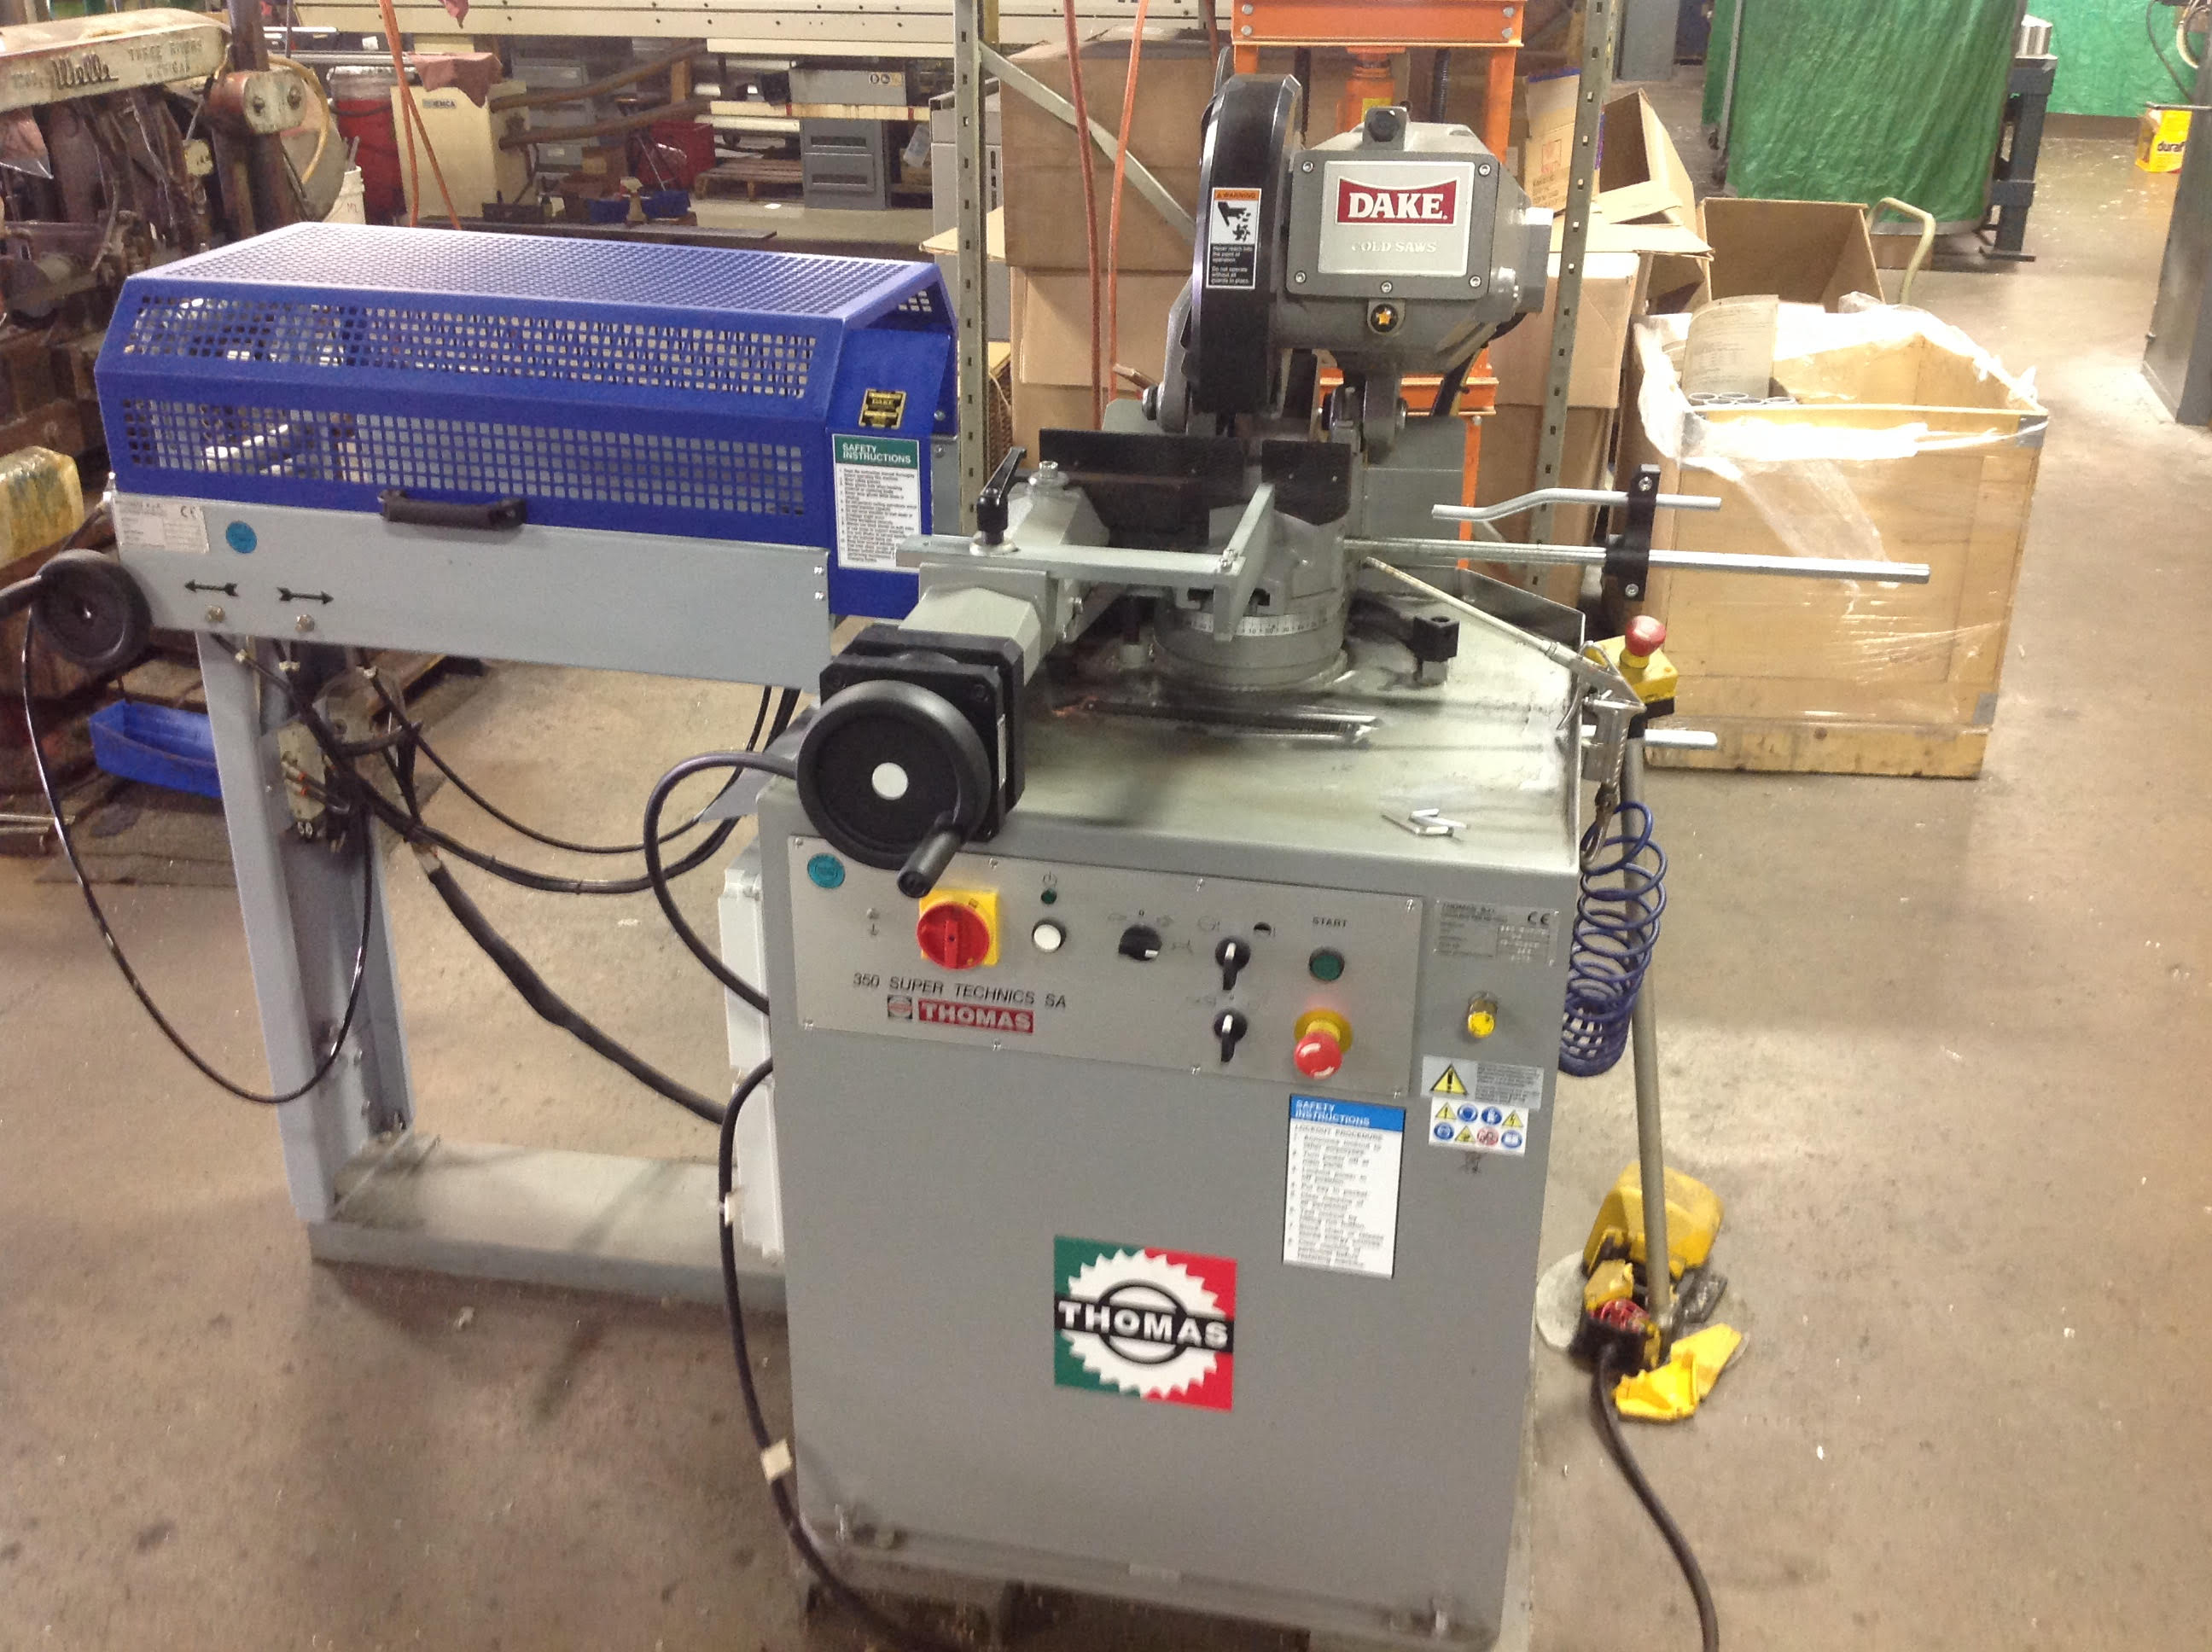 Used Vertical Band Saw Dake Thomas 350 Super Technics SA 2012